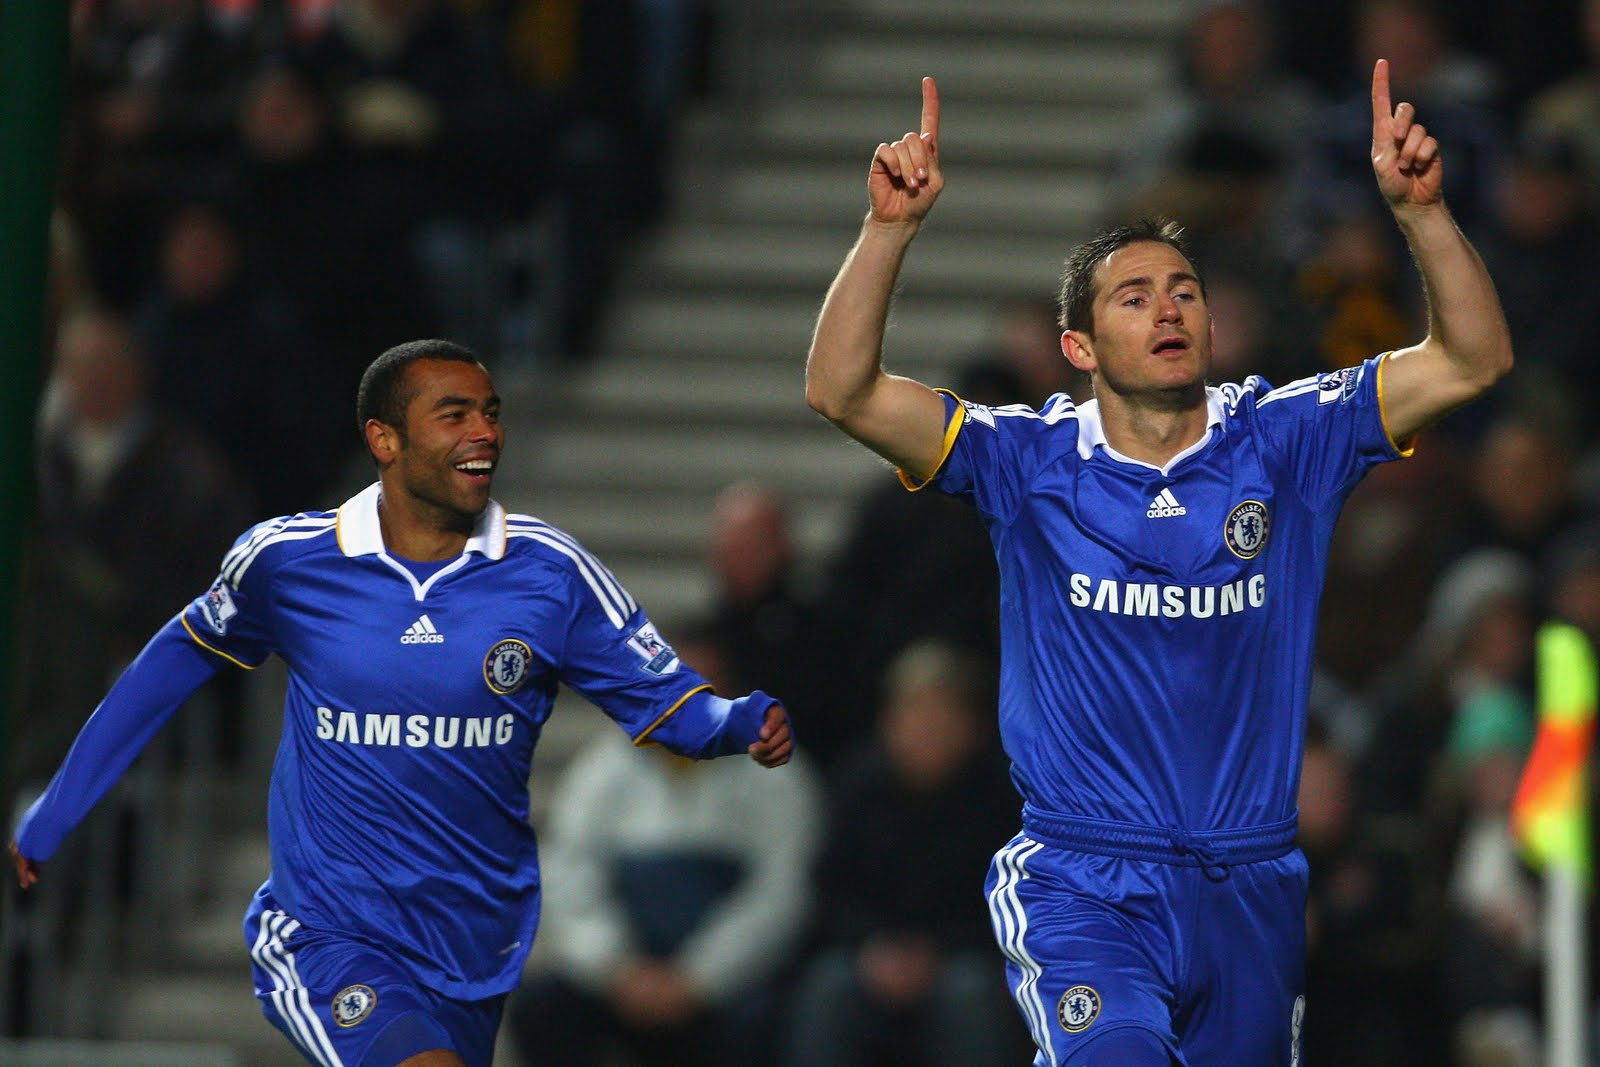 Sports and Players: Chelsea Football Club